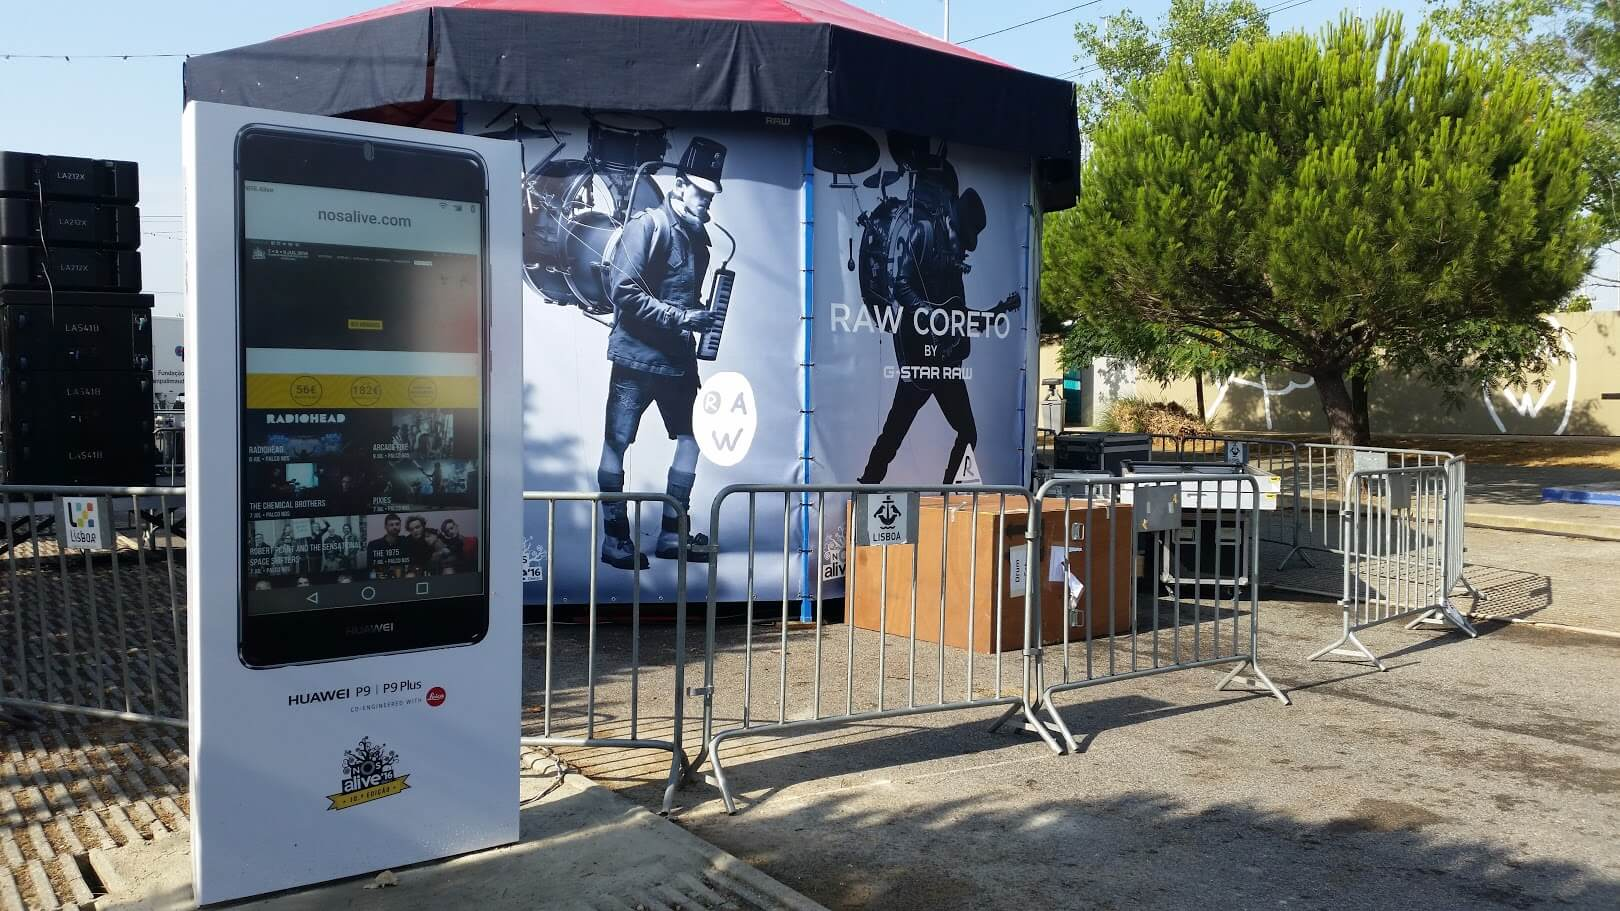 NOS ALIVE 2016: Digital billboards promote Huawei brand by PARTTEAM & OEMKIOSKS